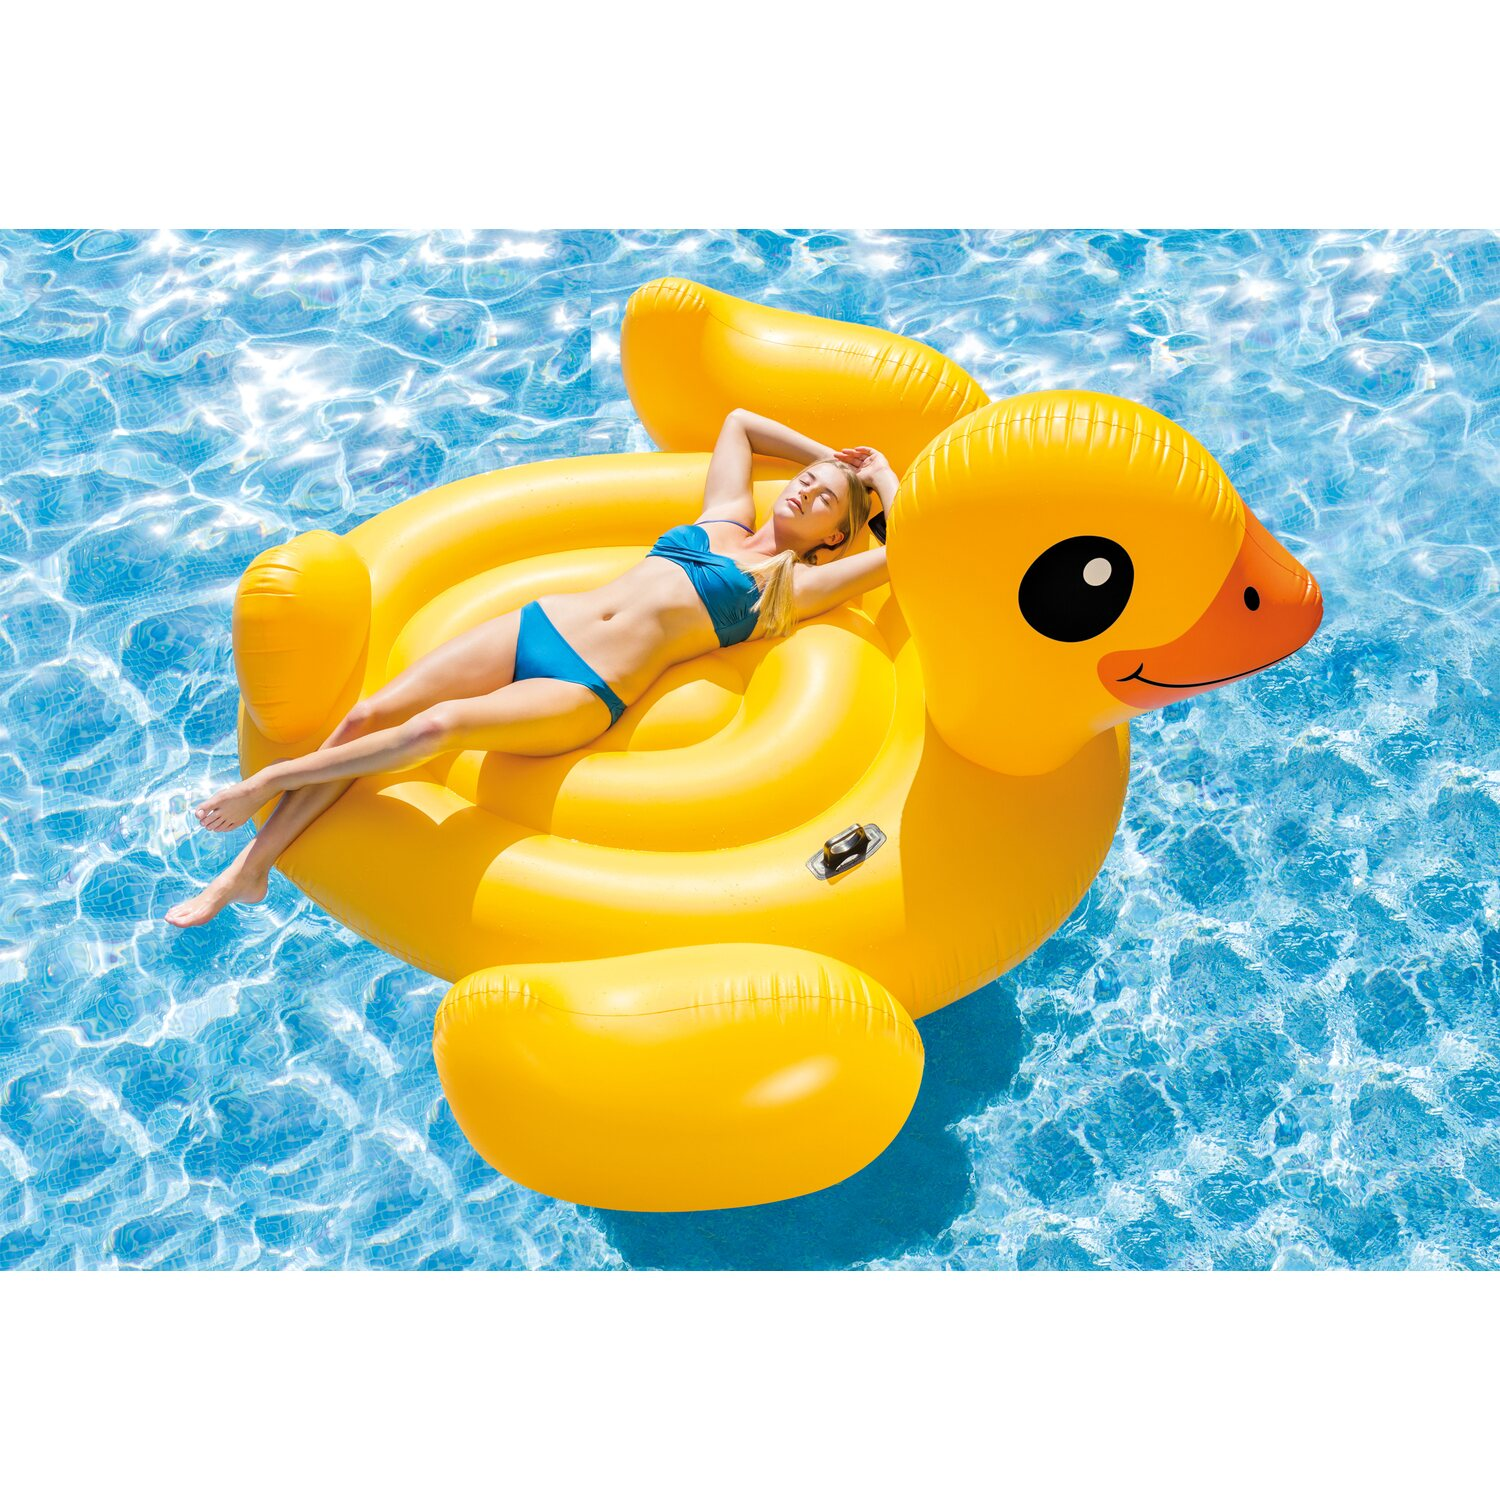 Intex isola grande papera 221 cm x 221 cm x 109 cm for Intex piscine catalogo